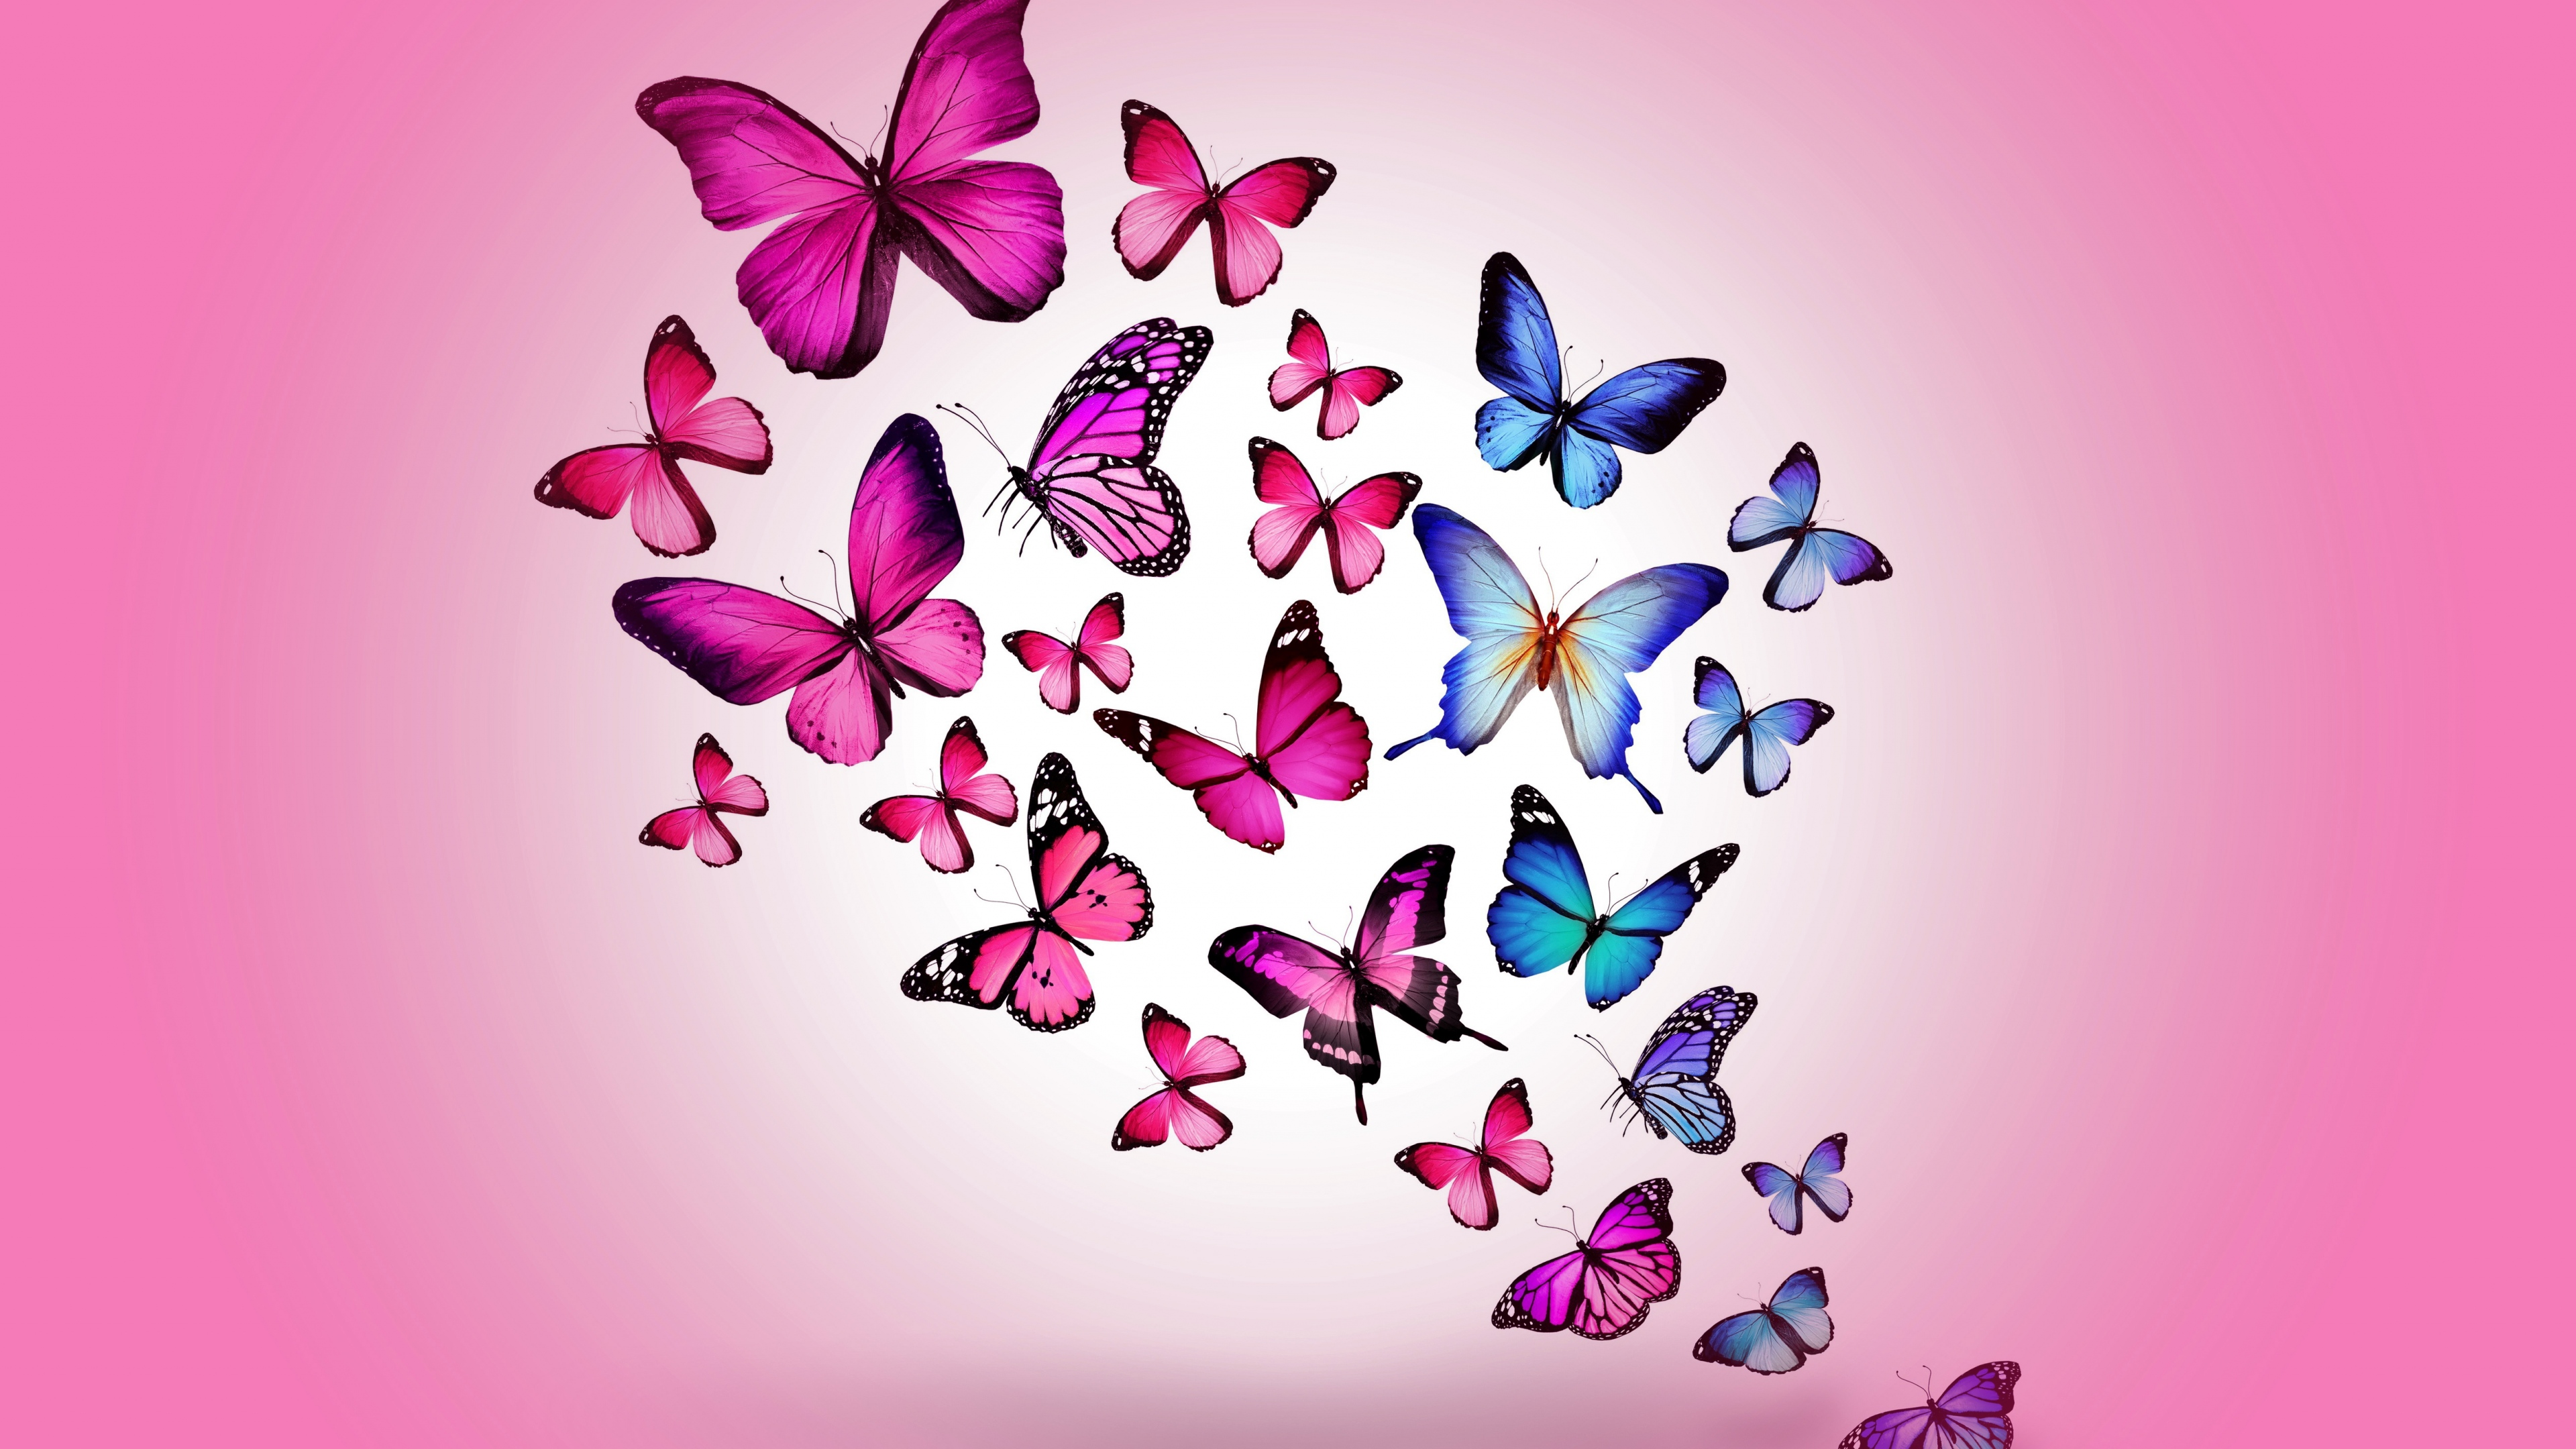 Best Hd Wallpaper For Android Mobile 4k Butterfly Wallpapers High Quality Download Free